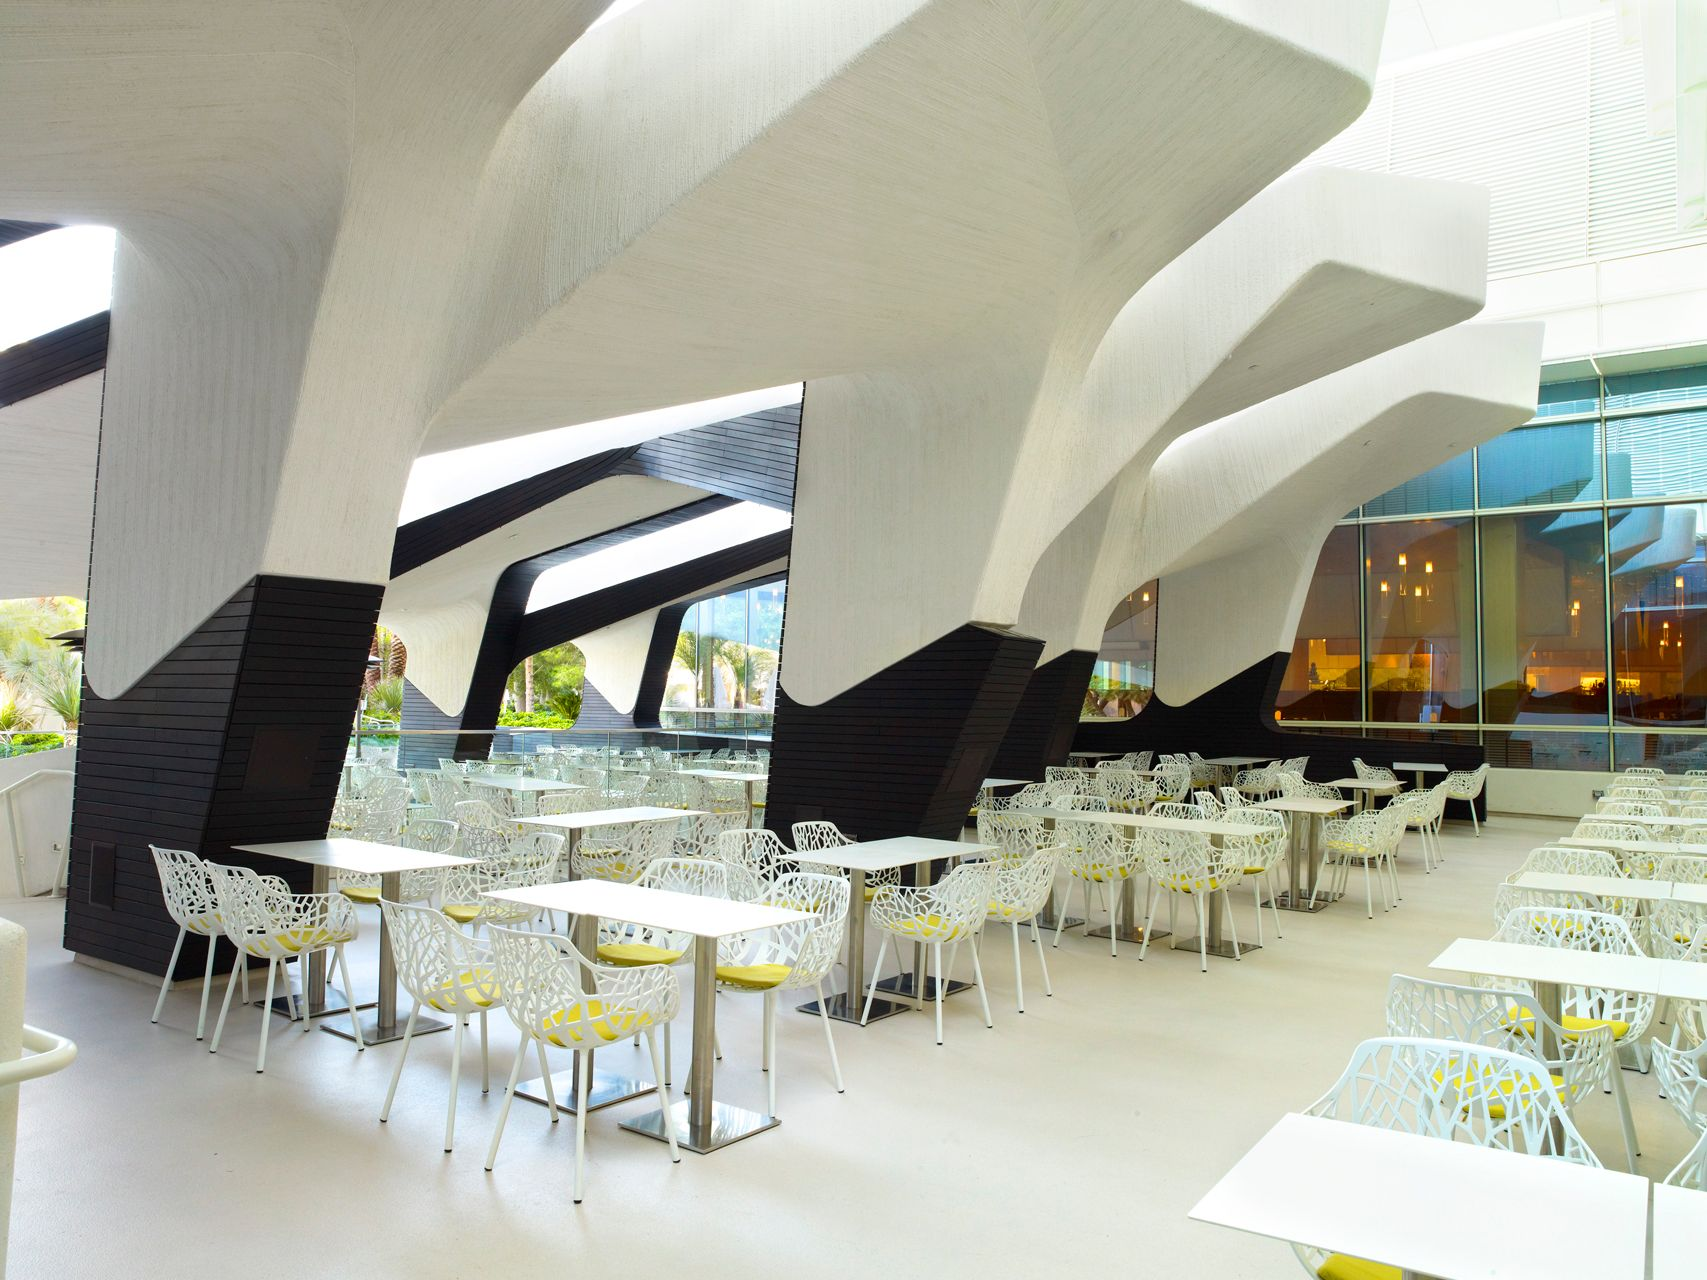 CITY CENTER Project type: Hospitality, Bar, Club     Location: Las Vegas, U.S.A.     Time: 2010     Client: MGM Mirage     Status: Completed     Size: 17,000 sqm     Photos: Ricky Ridecos  City Center's Aria Pool Deck, Restaurant and Bar, Las Vegas